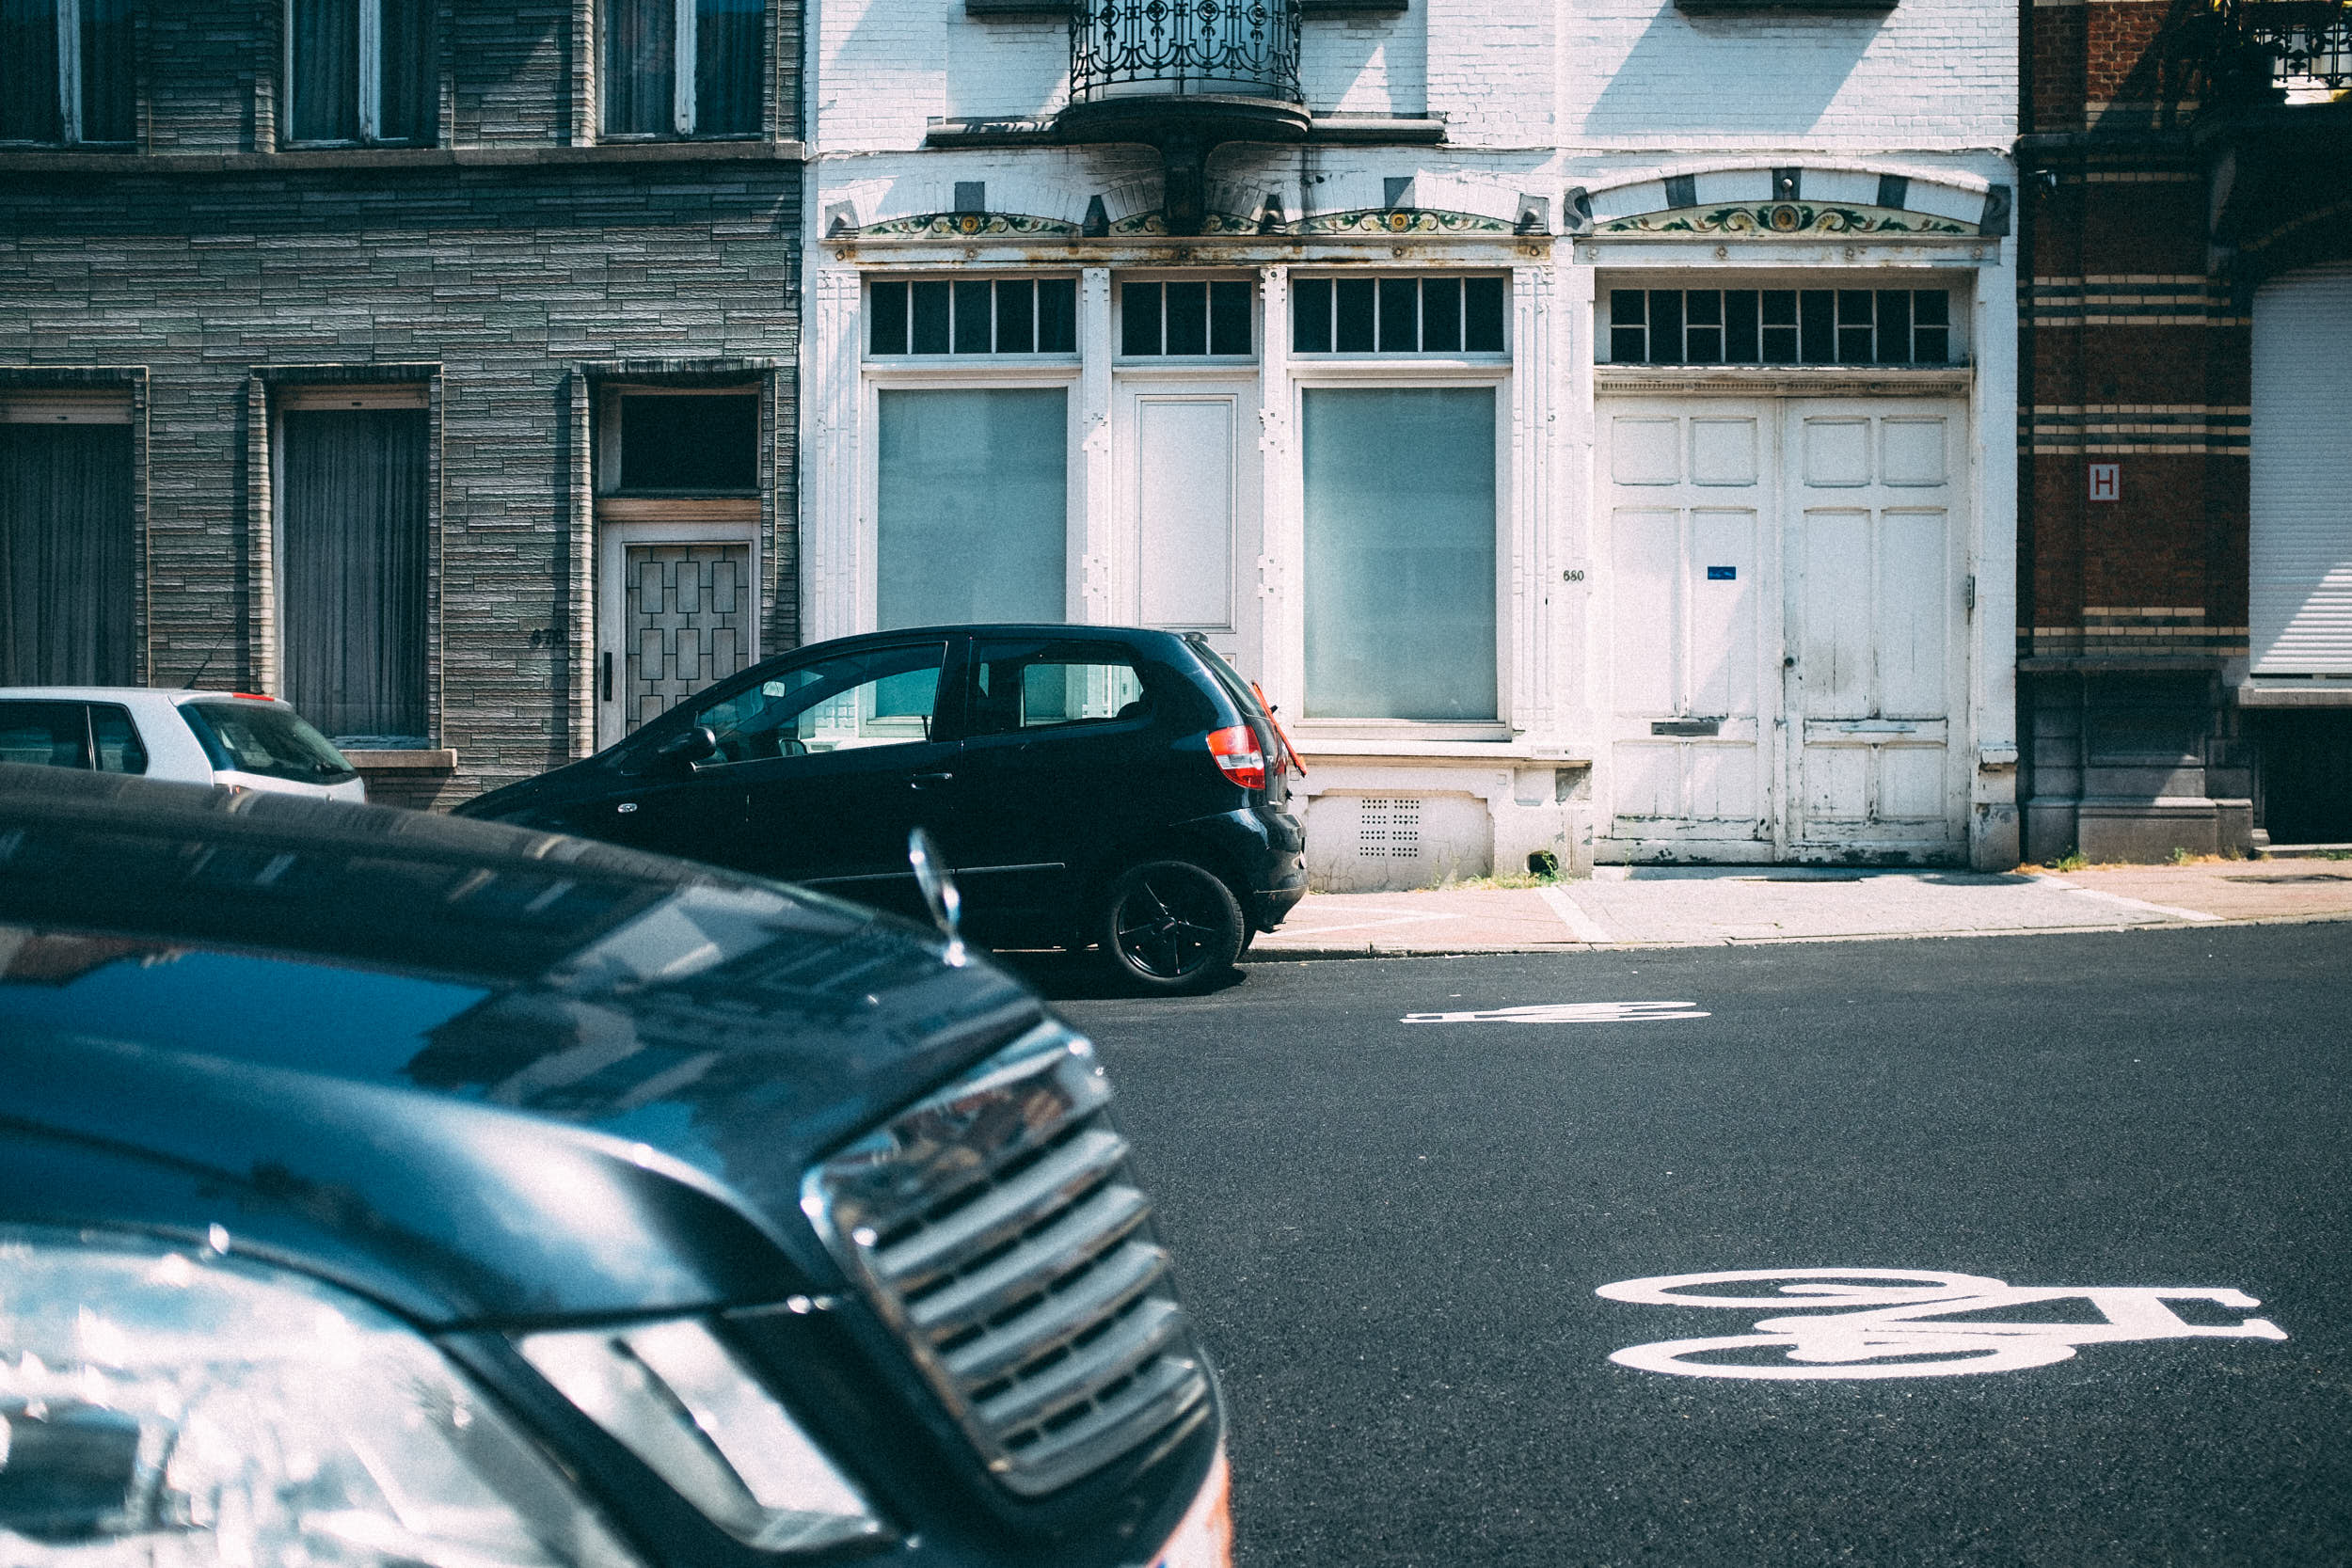 Travel photography: cars parked on the street of Brussels, Belgium.